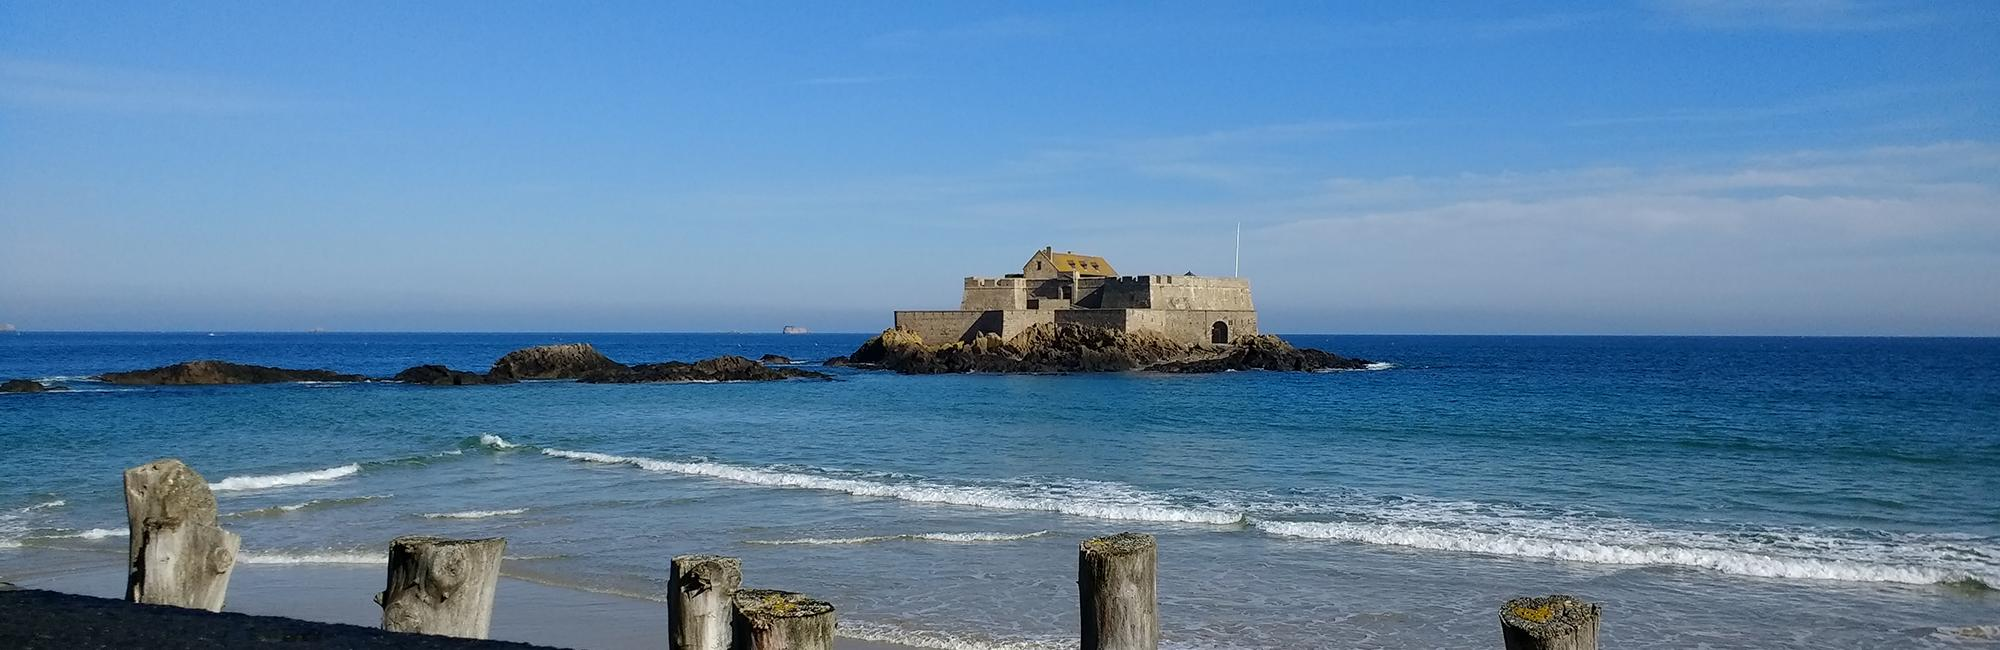 visit st malo in brittany